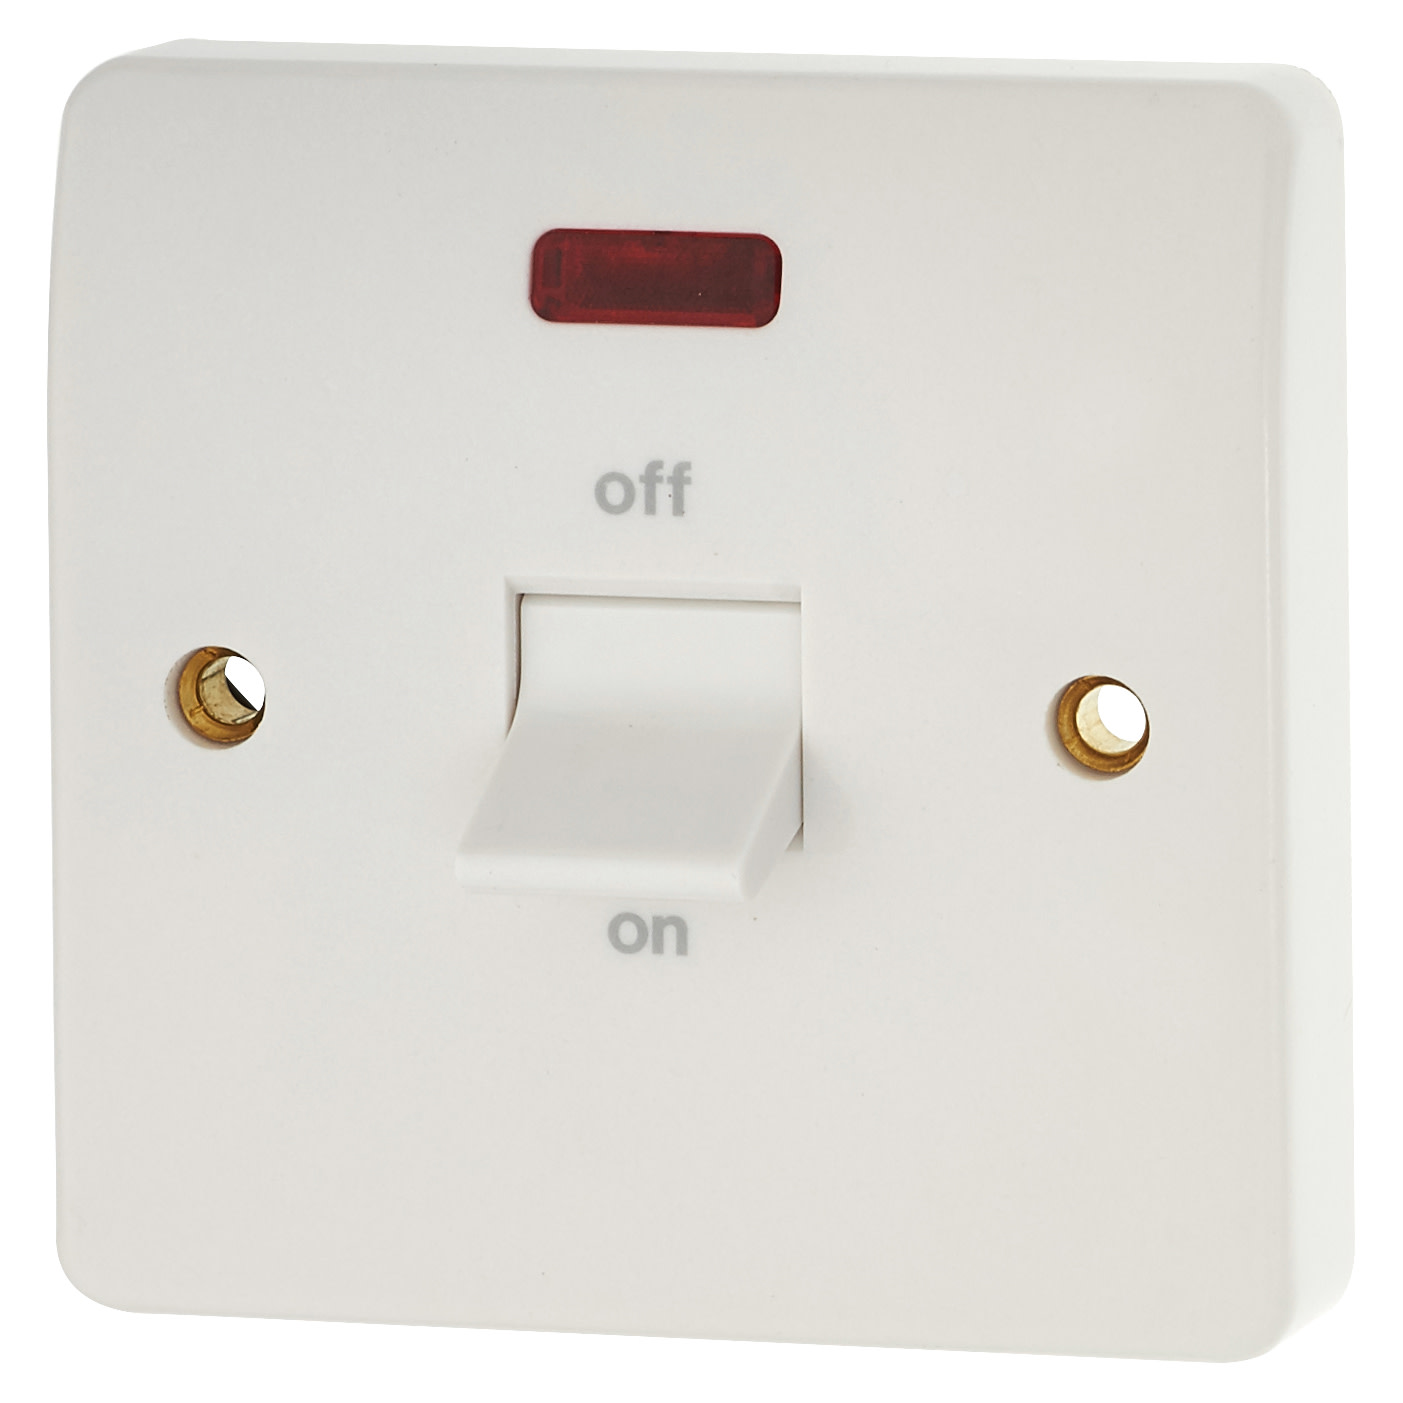 MK Logic Plus 32A 1 Gang Double Pole Cooker Switch - White)